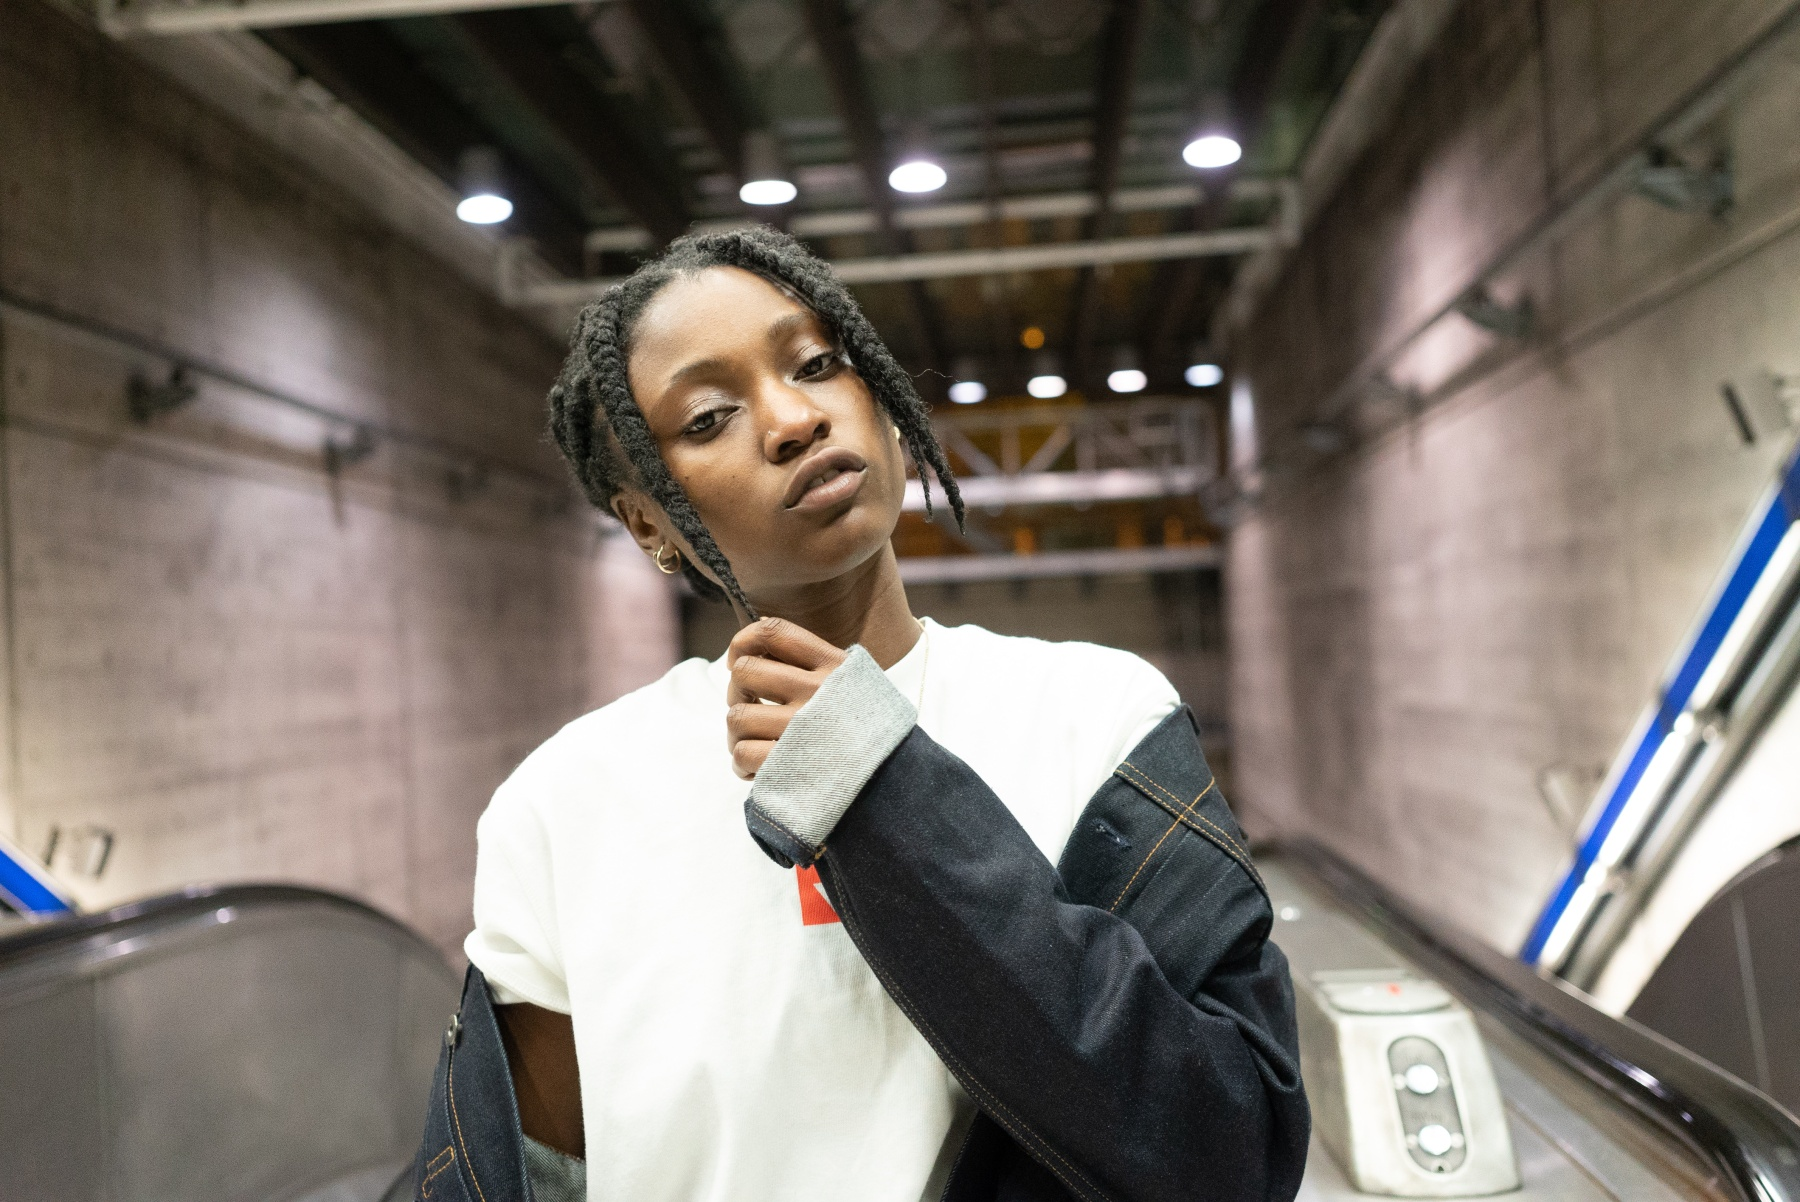 SXSW Artist Spotlight: Flohio, UK Rap and Grime